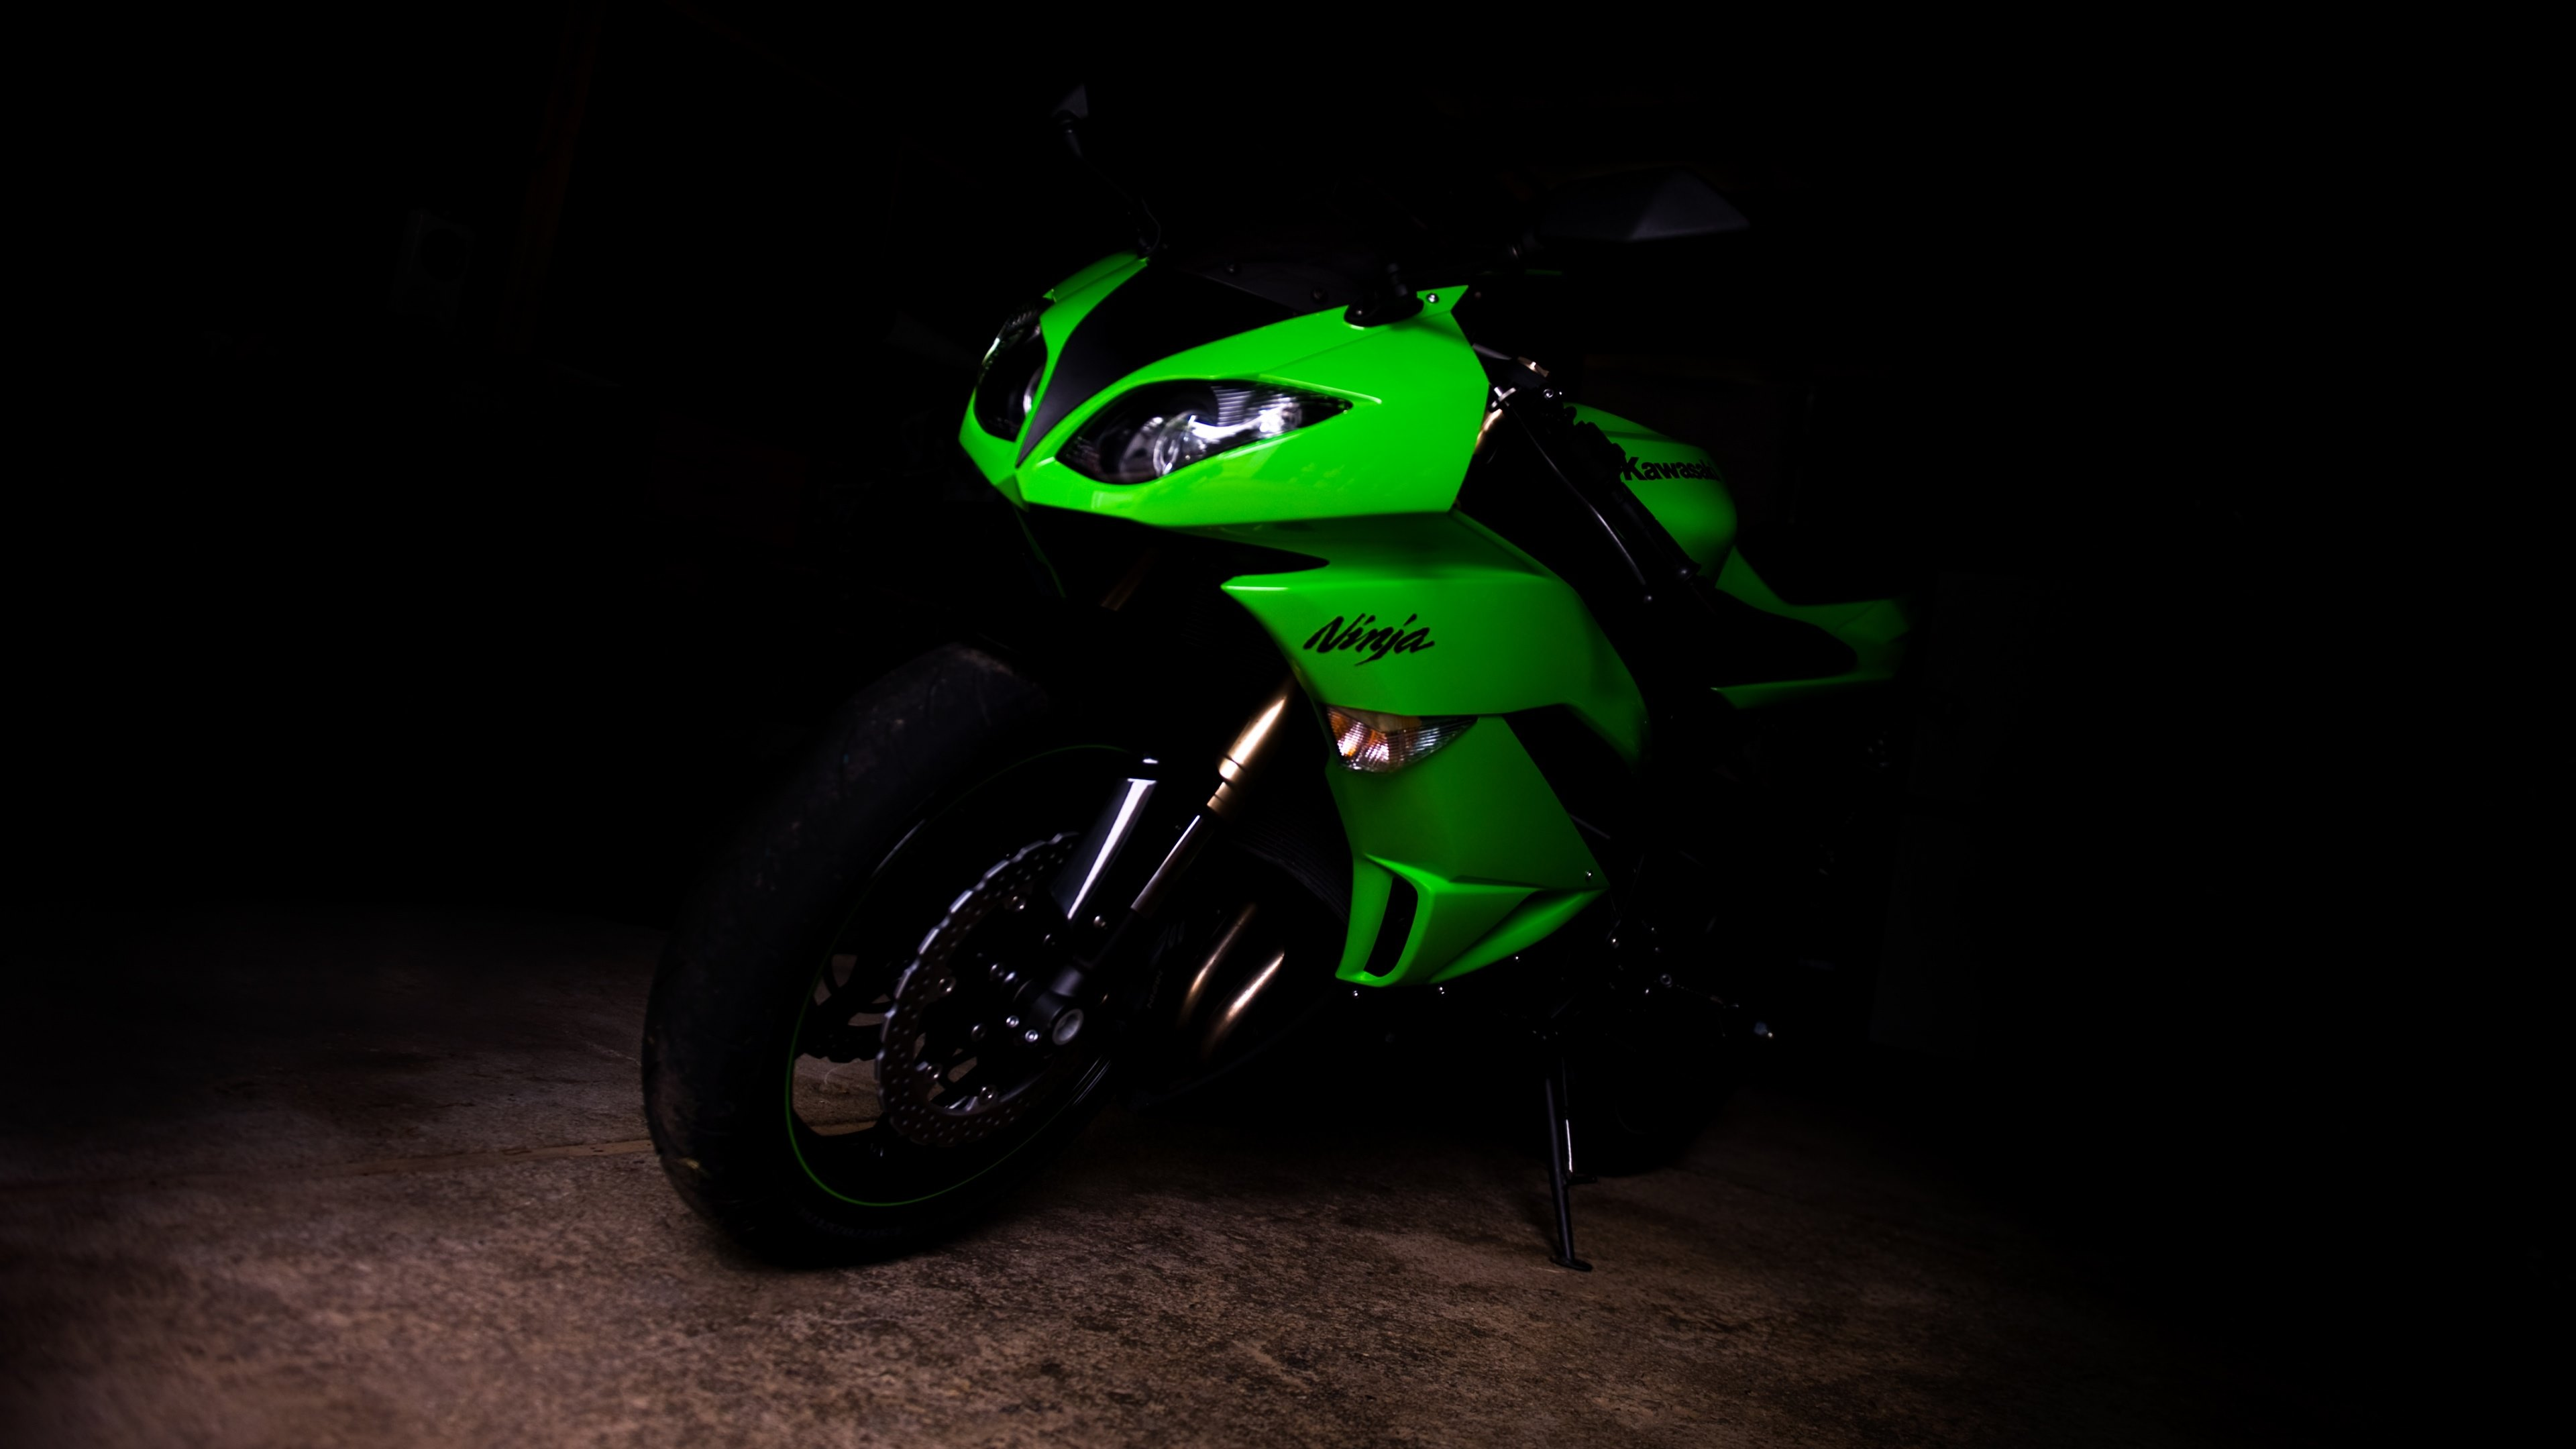 05 06 2018 Zx6r Wallpapers 3840x2160